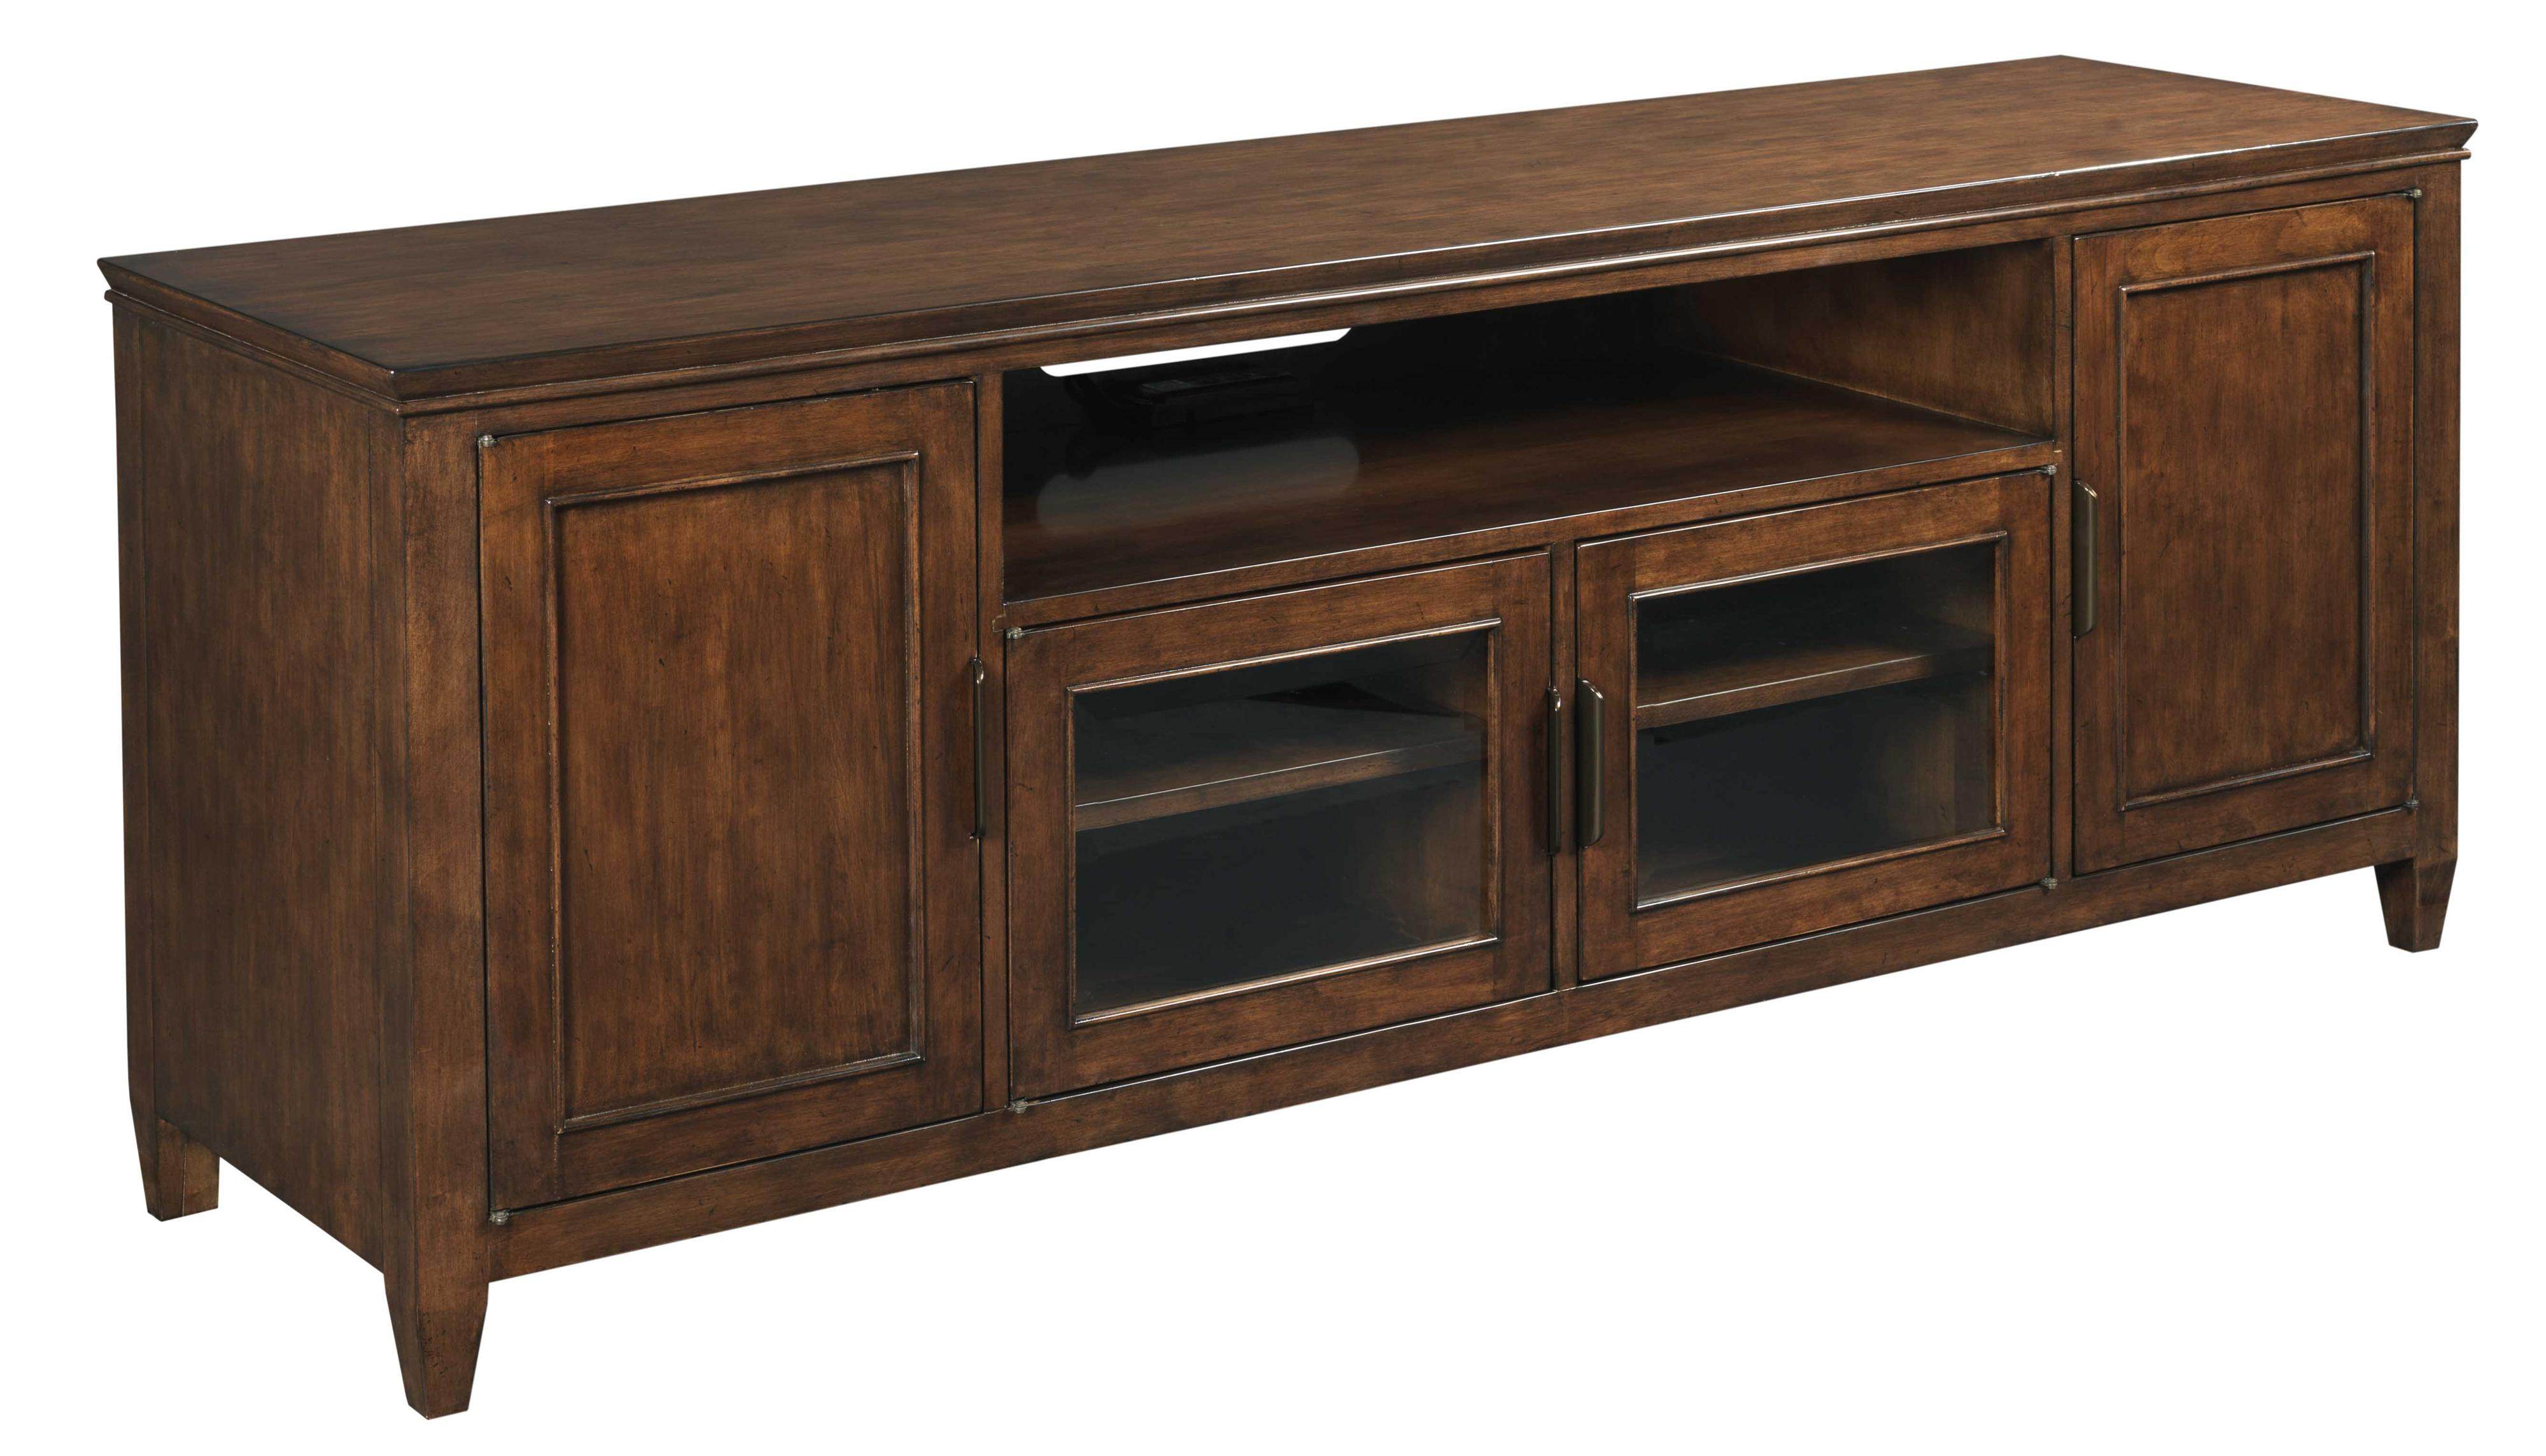 "Elise Accord 72"" Console by Kincaid Furniture at Northeast Factory Direct"